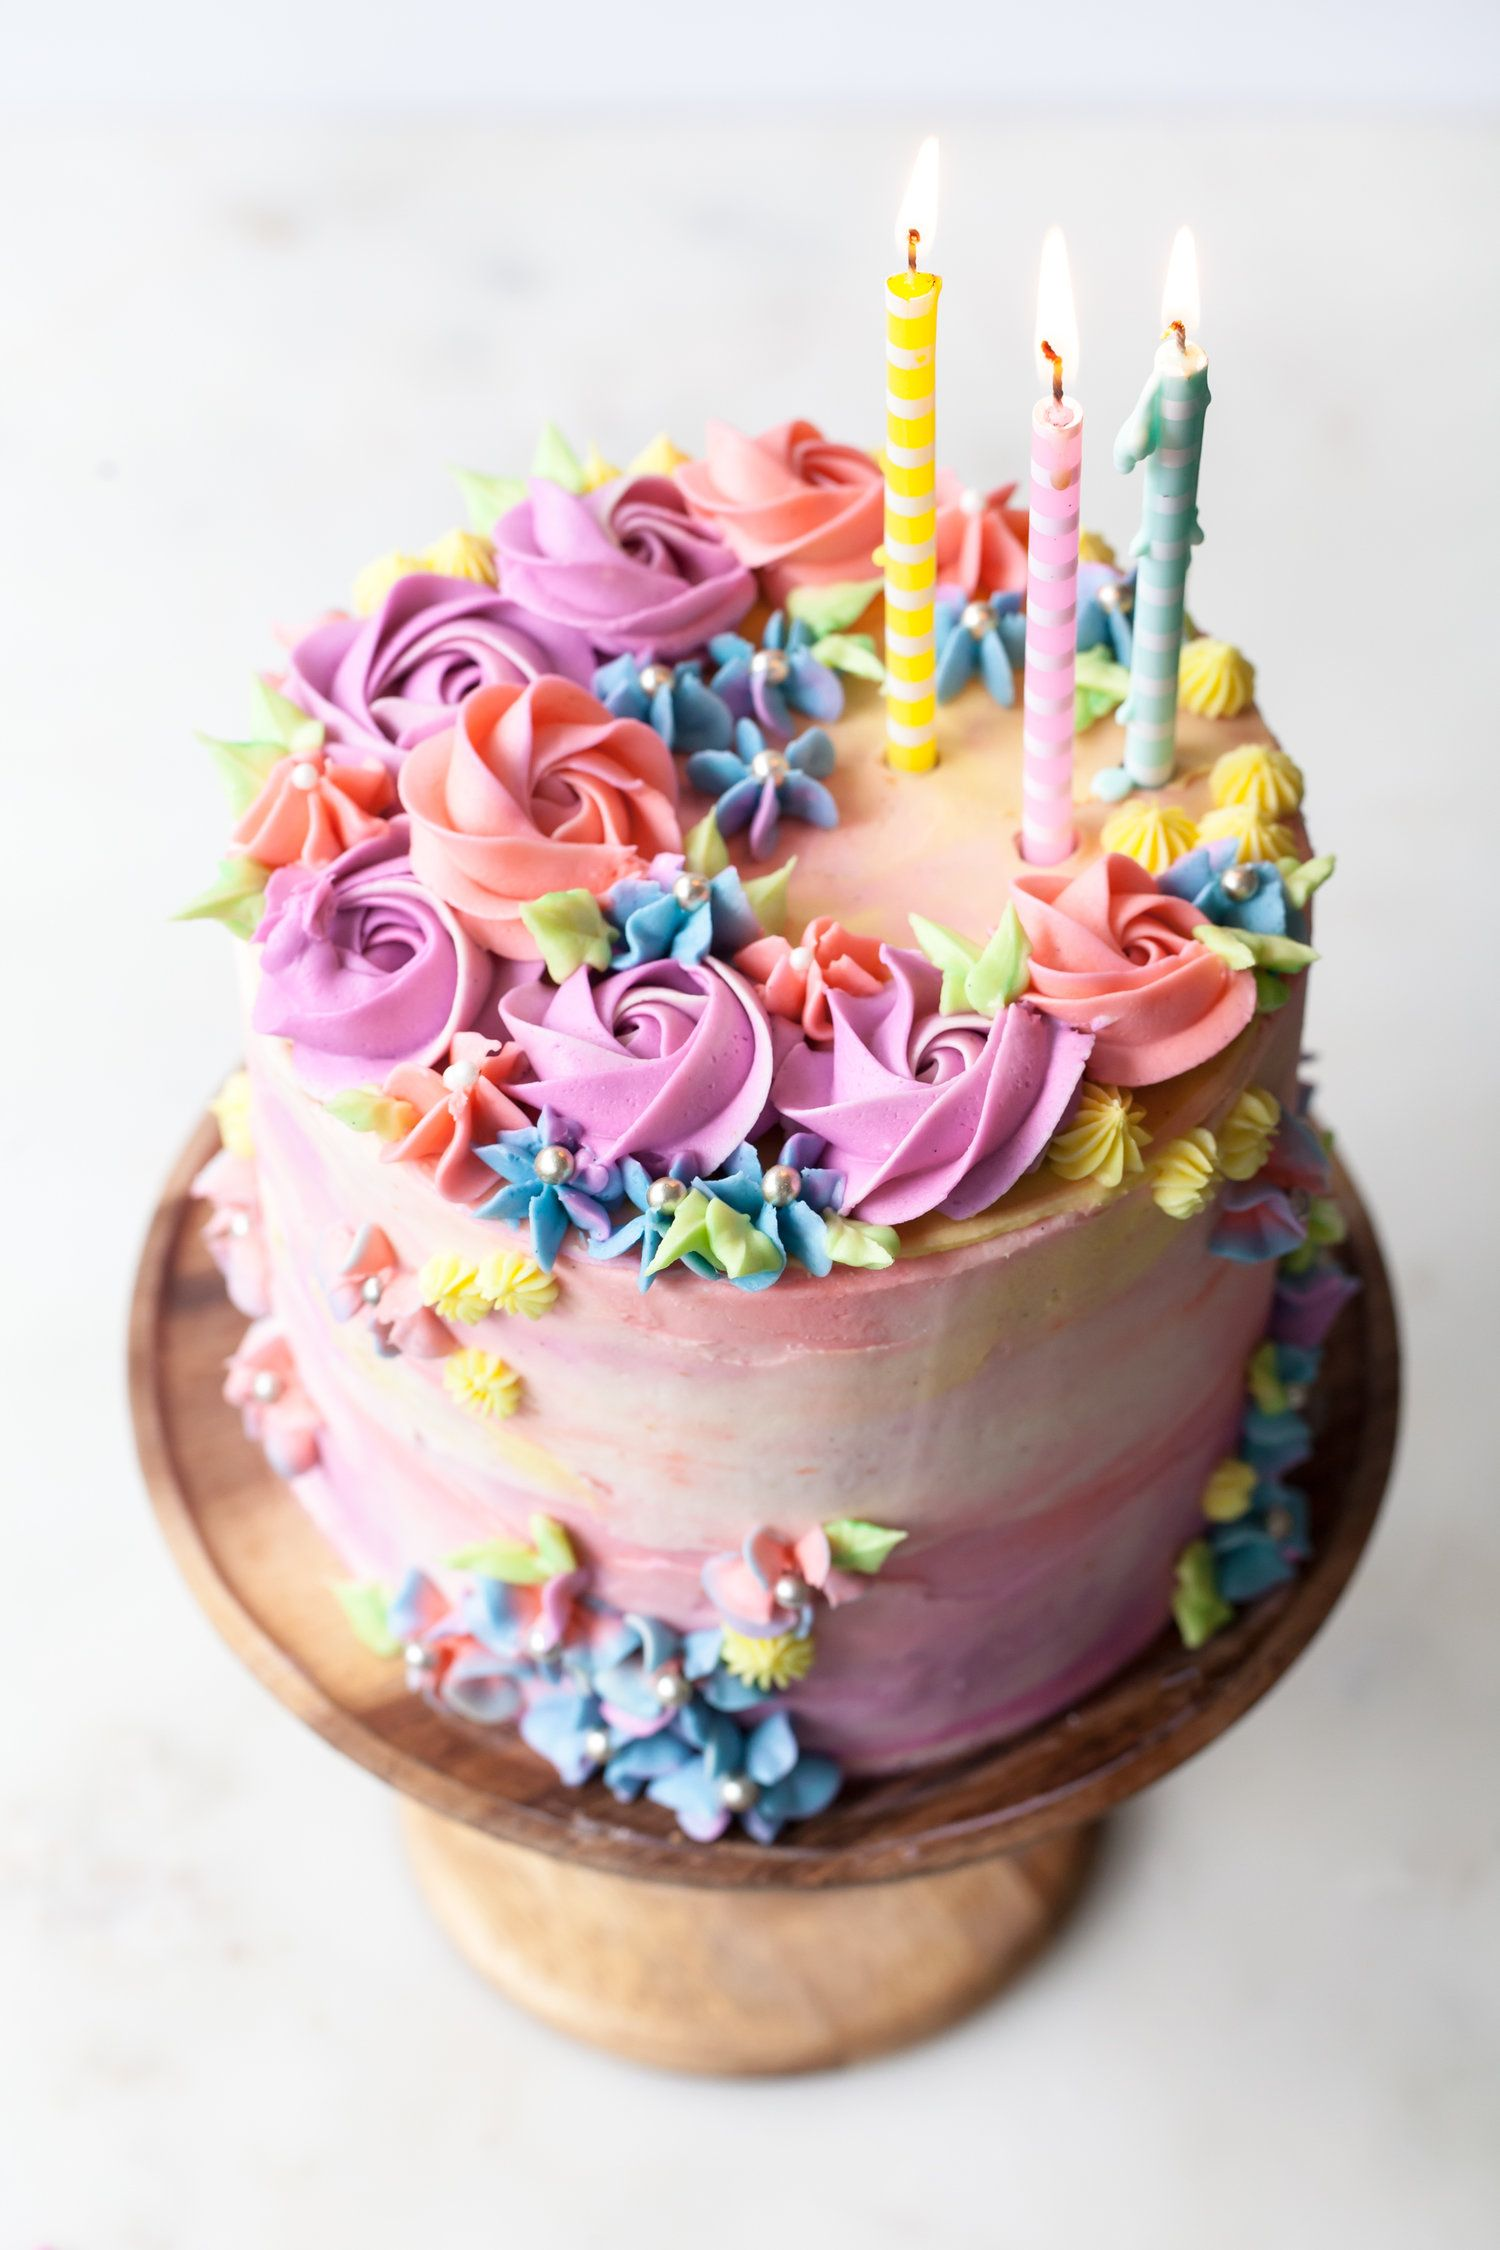 Excellent Pastel Buttercream Sprinkle Birthday Cake With Images Funny Birthday Cards Online Alyptdamsfinfo